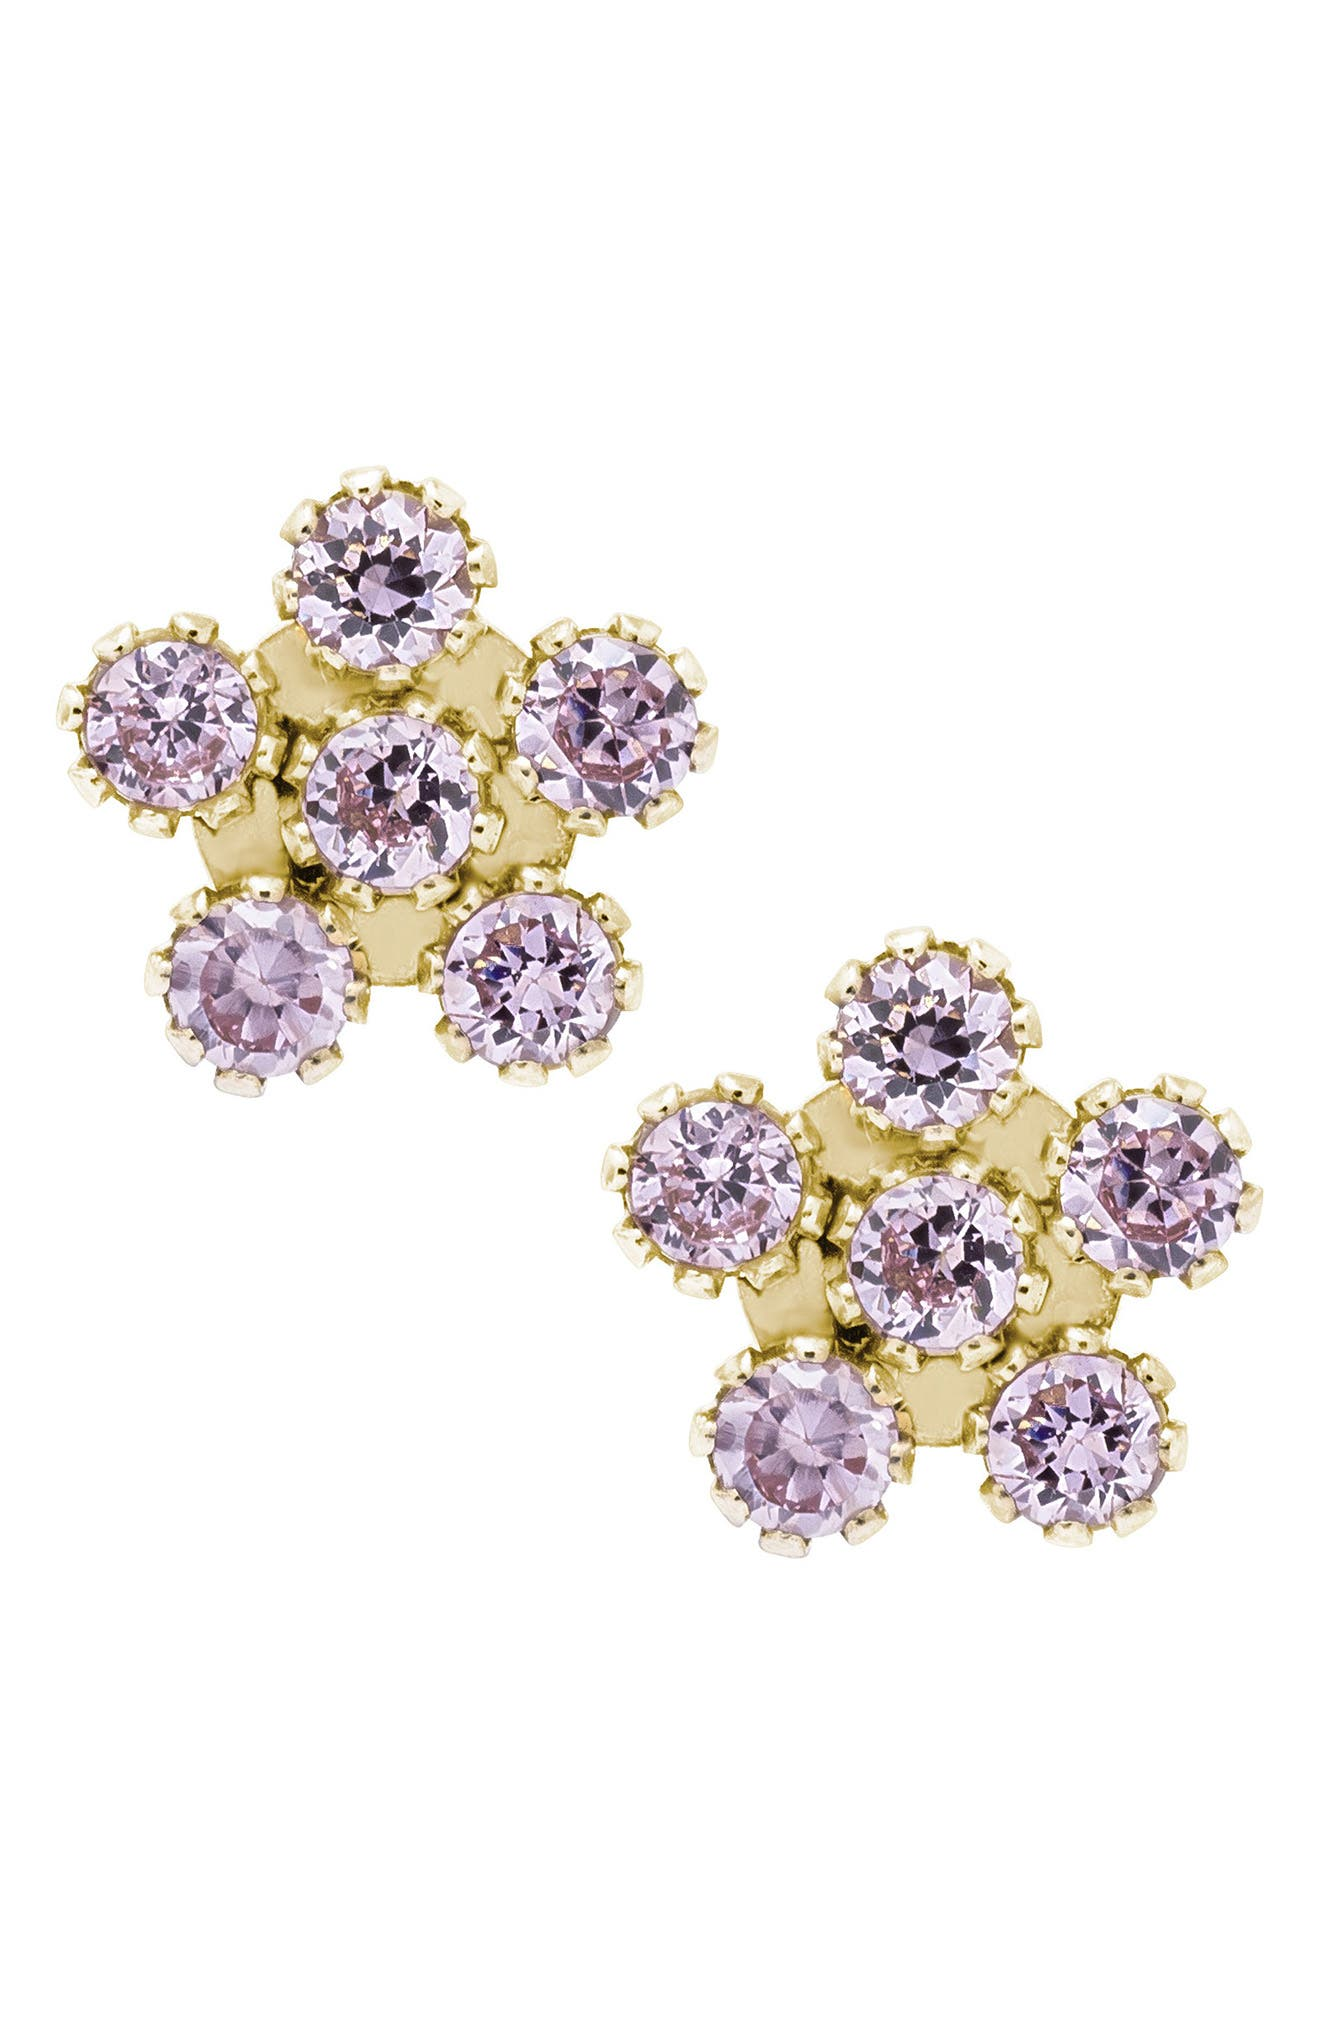 14k Gold & Cubic Zirconia Flower Earrings,                         Main,                         color, Pink/ Gold